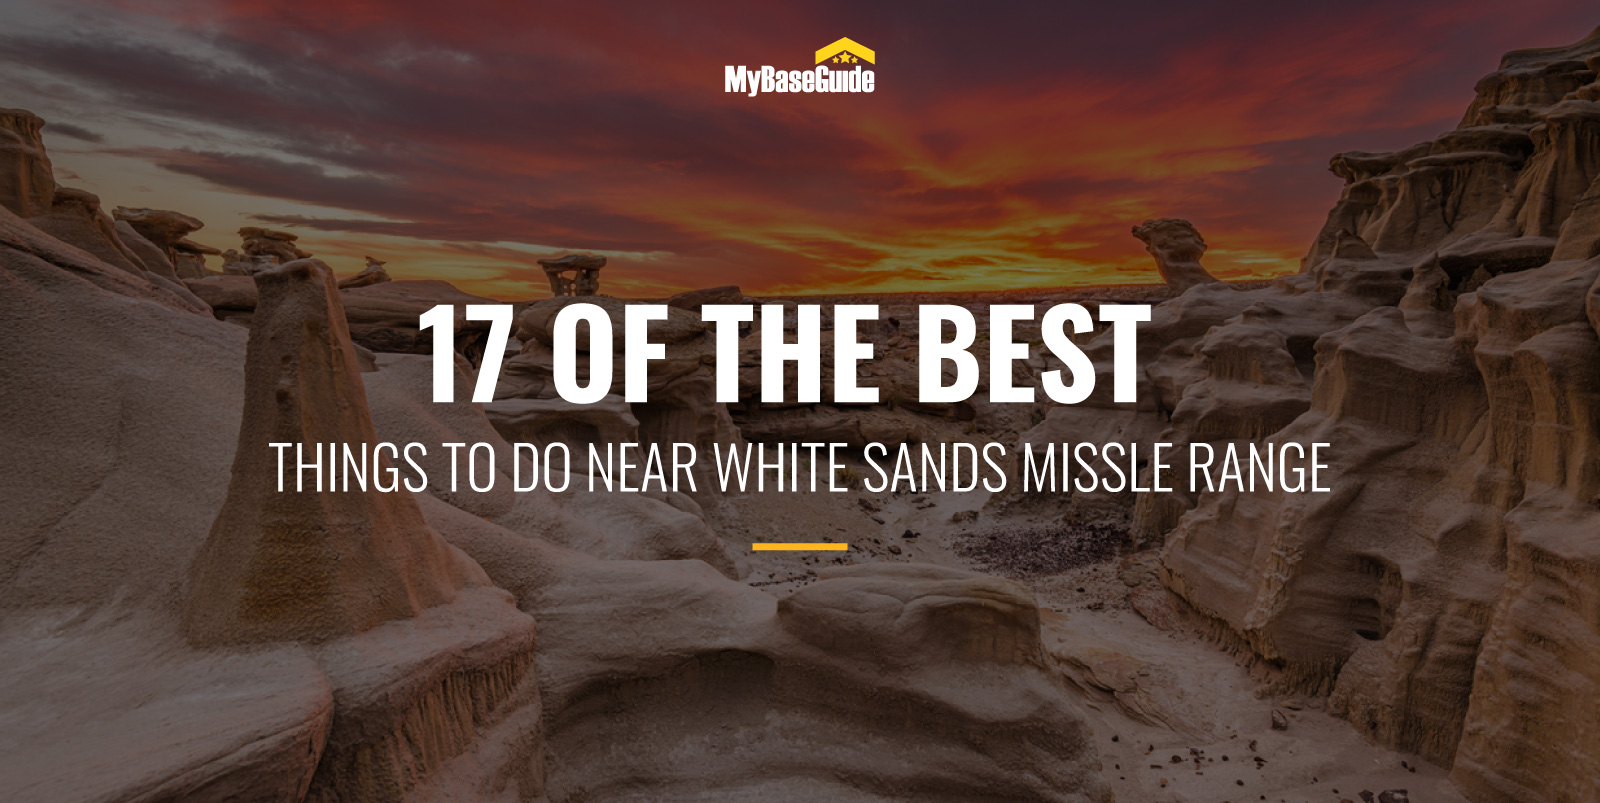 17 Of the Best Things to Do Near White Sands Missile Range